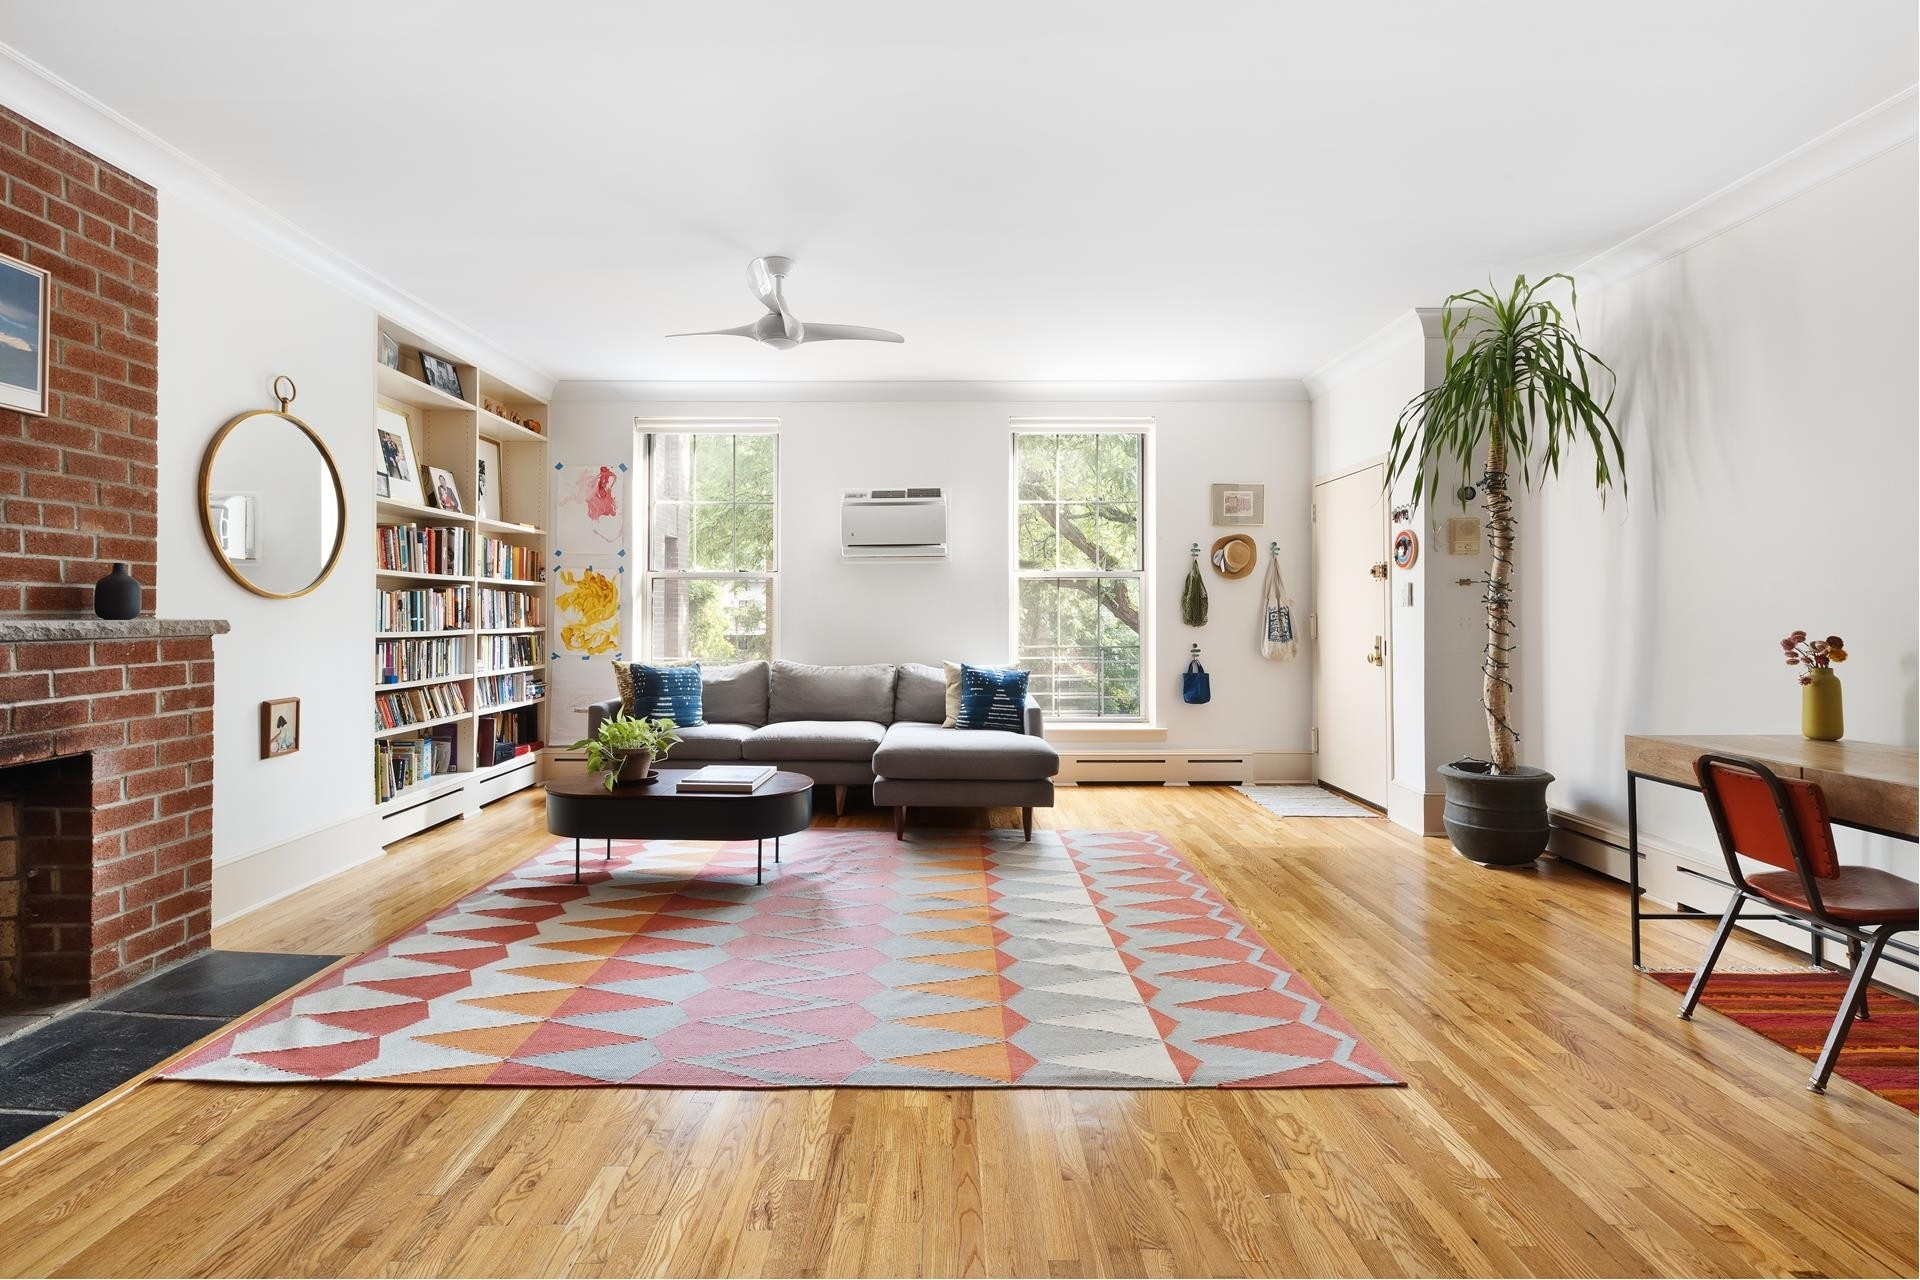 Property at 339 Sackett St, 2 Brooklyn